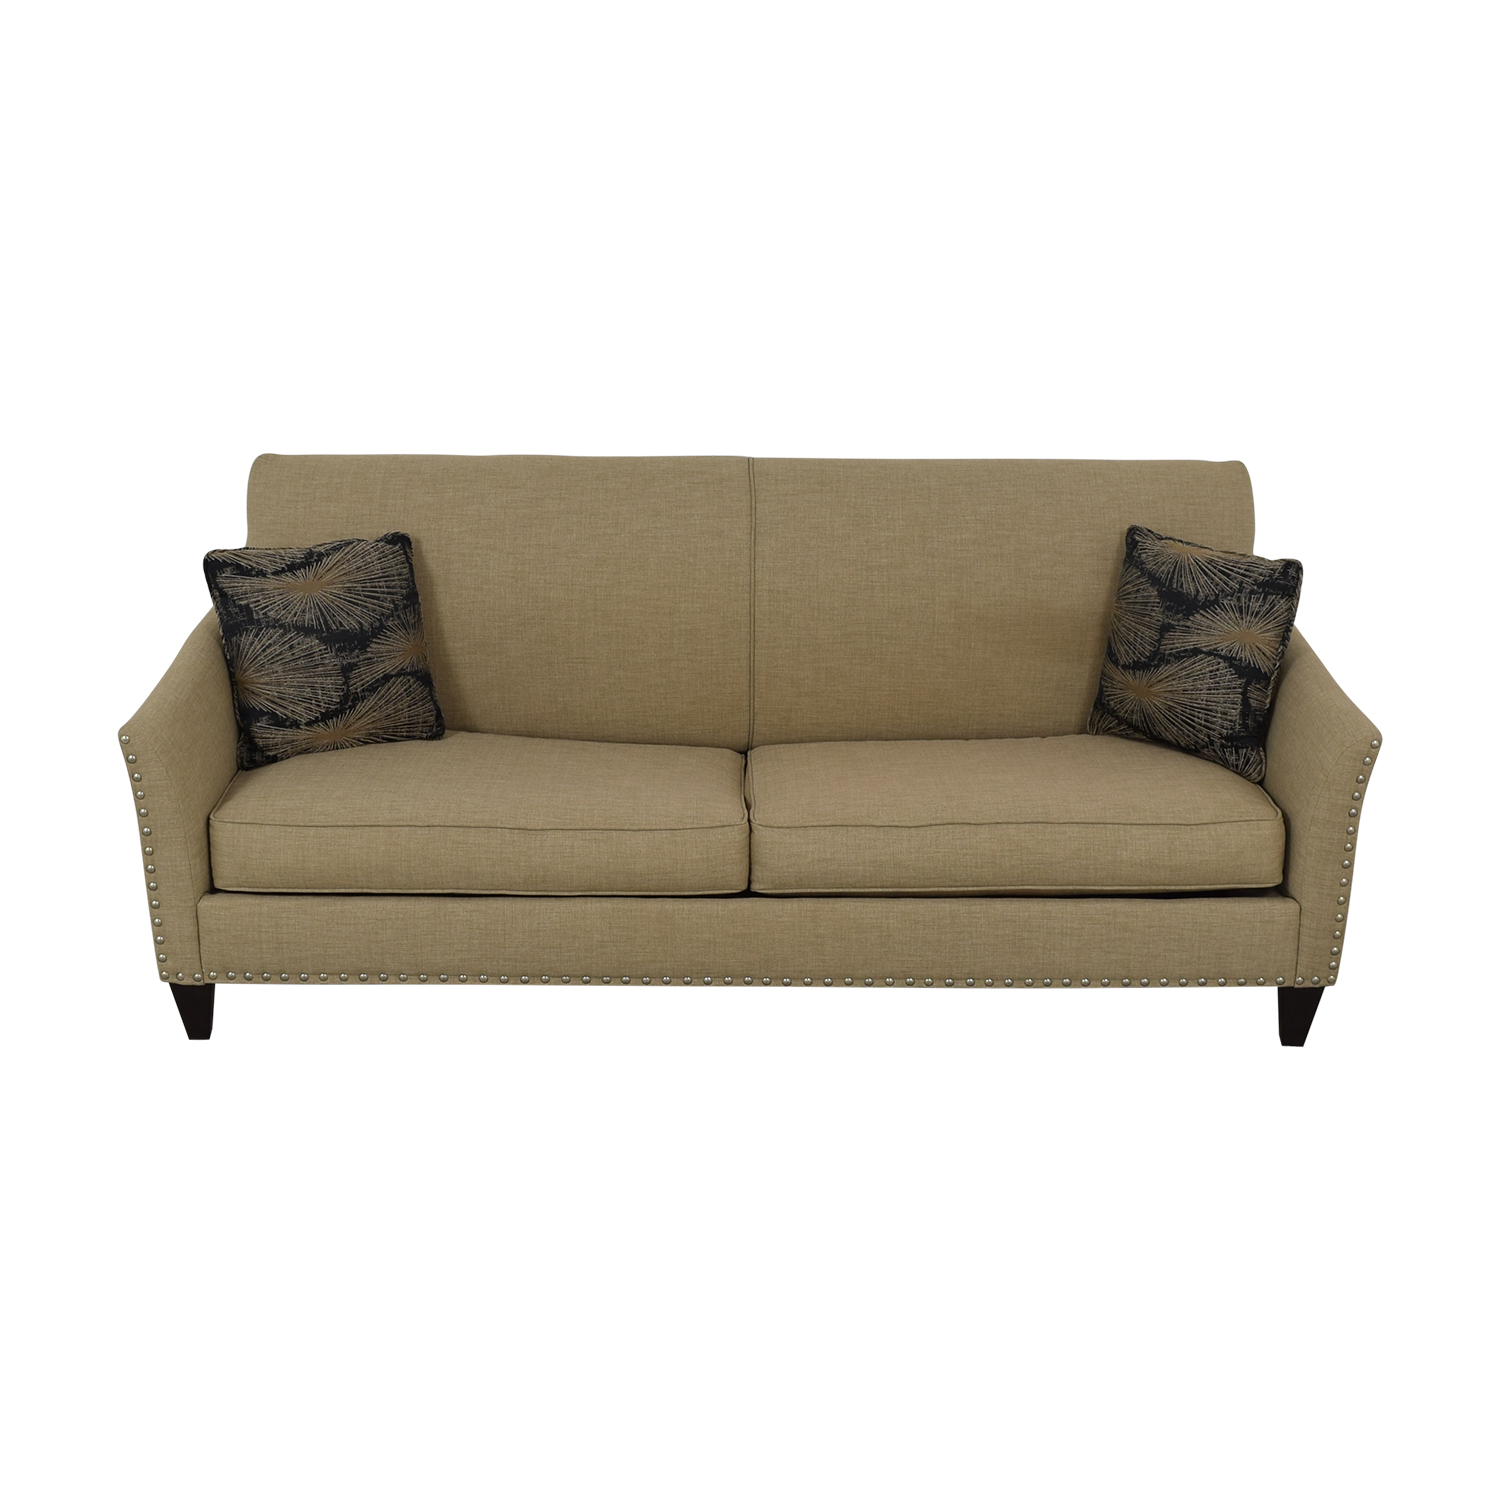 buy Rowe Furniture Varick Sleeper Sofa Rowe Furniture Classic Sofas